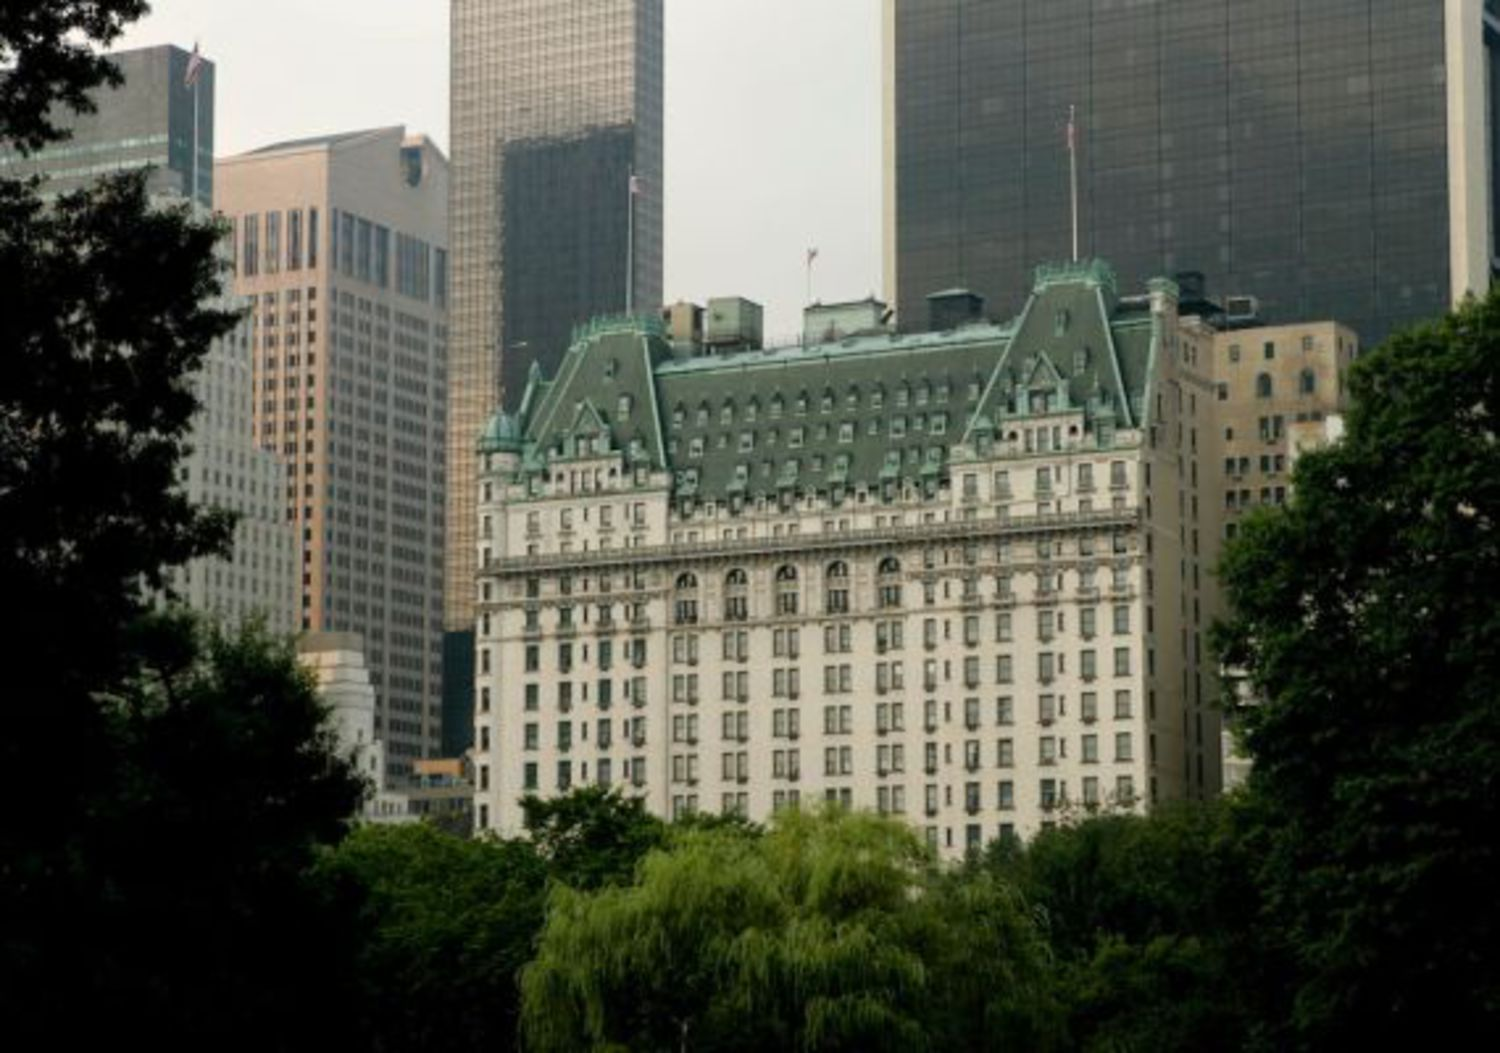 "Plaza Hotel: The Plaza has been called ""the most elegant of our great New York City hotels."" It stands gracefully at Central Park South facing Fifth Avenue in a European-style plaza that is almost unique to the city. Completed in 1905, over the decades it has played host to dignitaries, celebrities and world-renowned artists and architects. In receiving landmark status, it was described as adding ""immeasurably to the beauty of the skyline of New York City."""